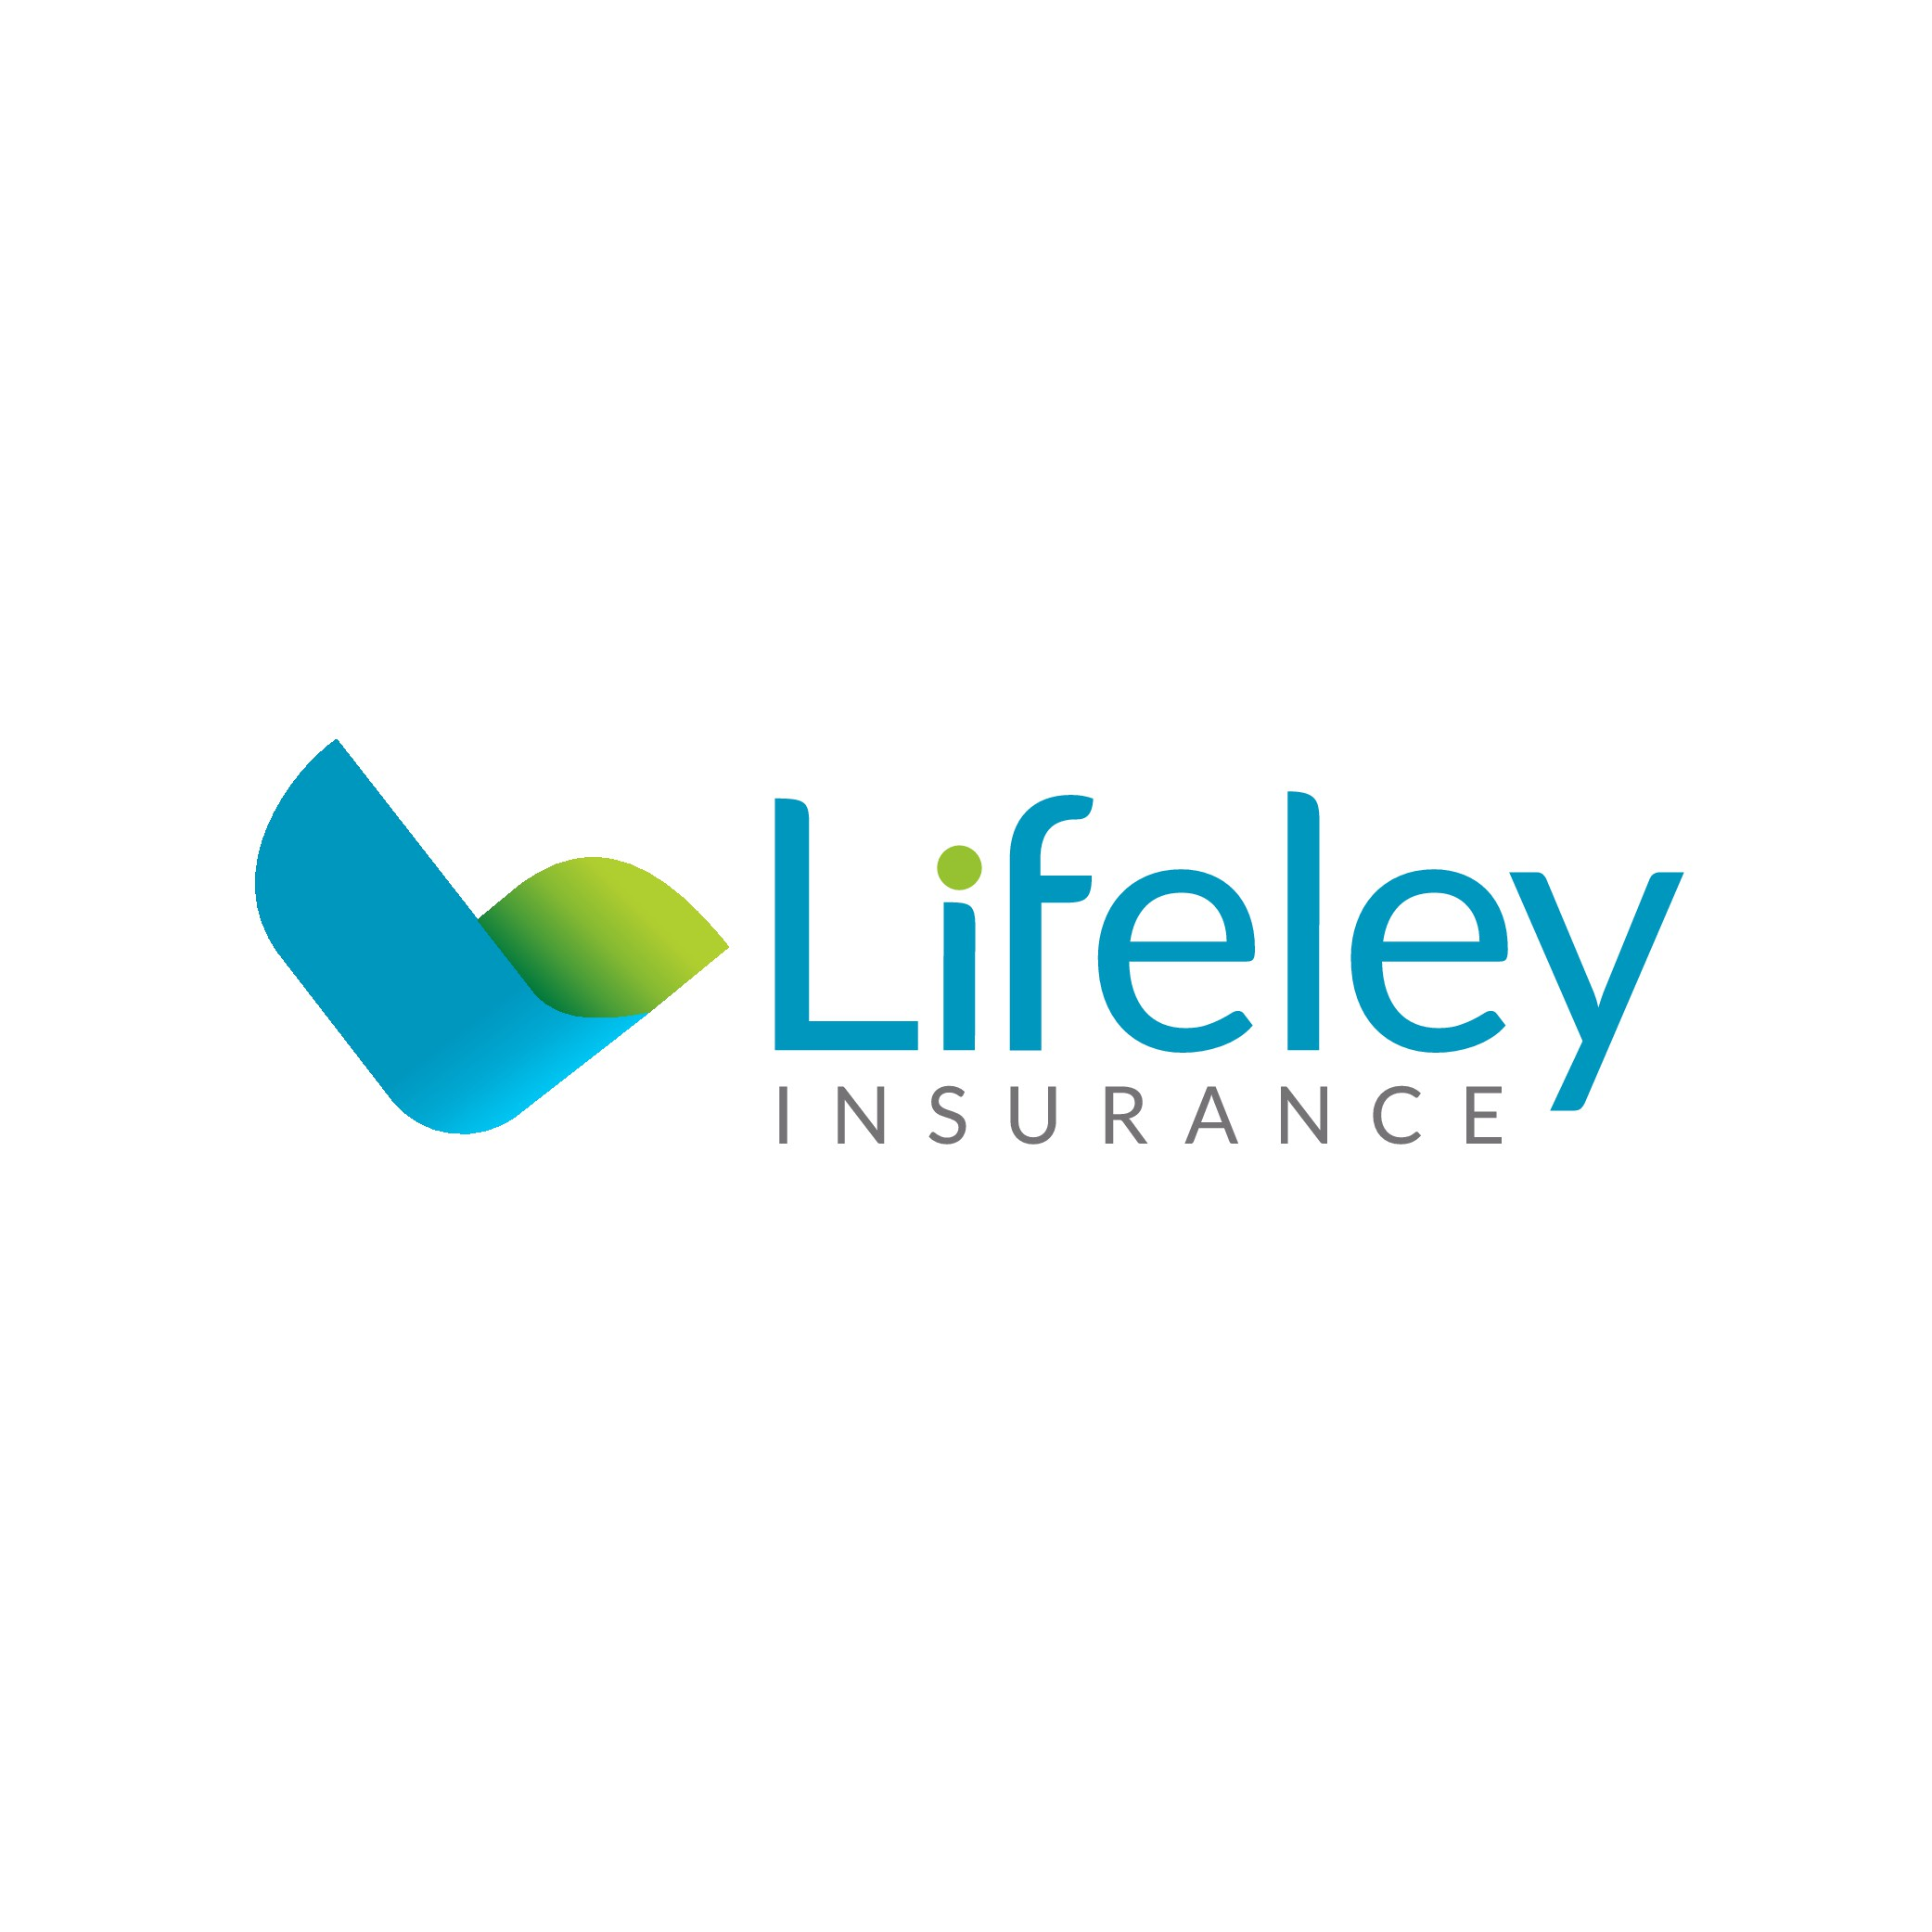 Innovative insurance company looking for a cutting edge logo!